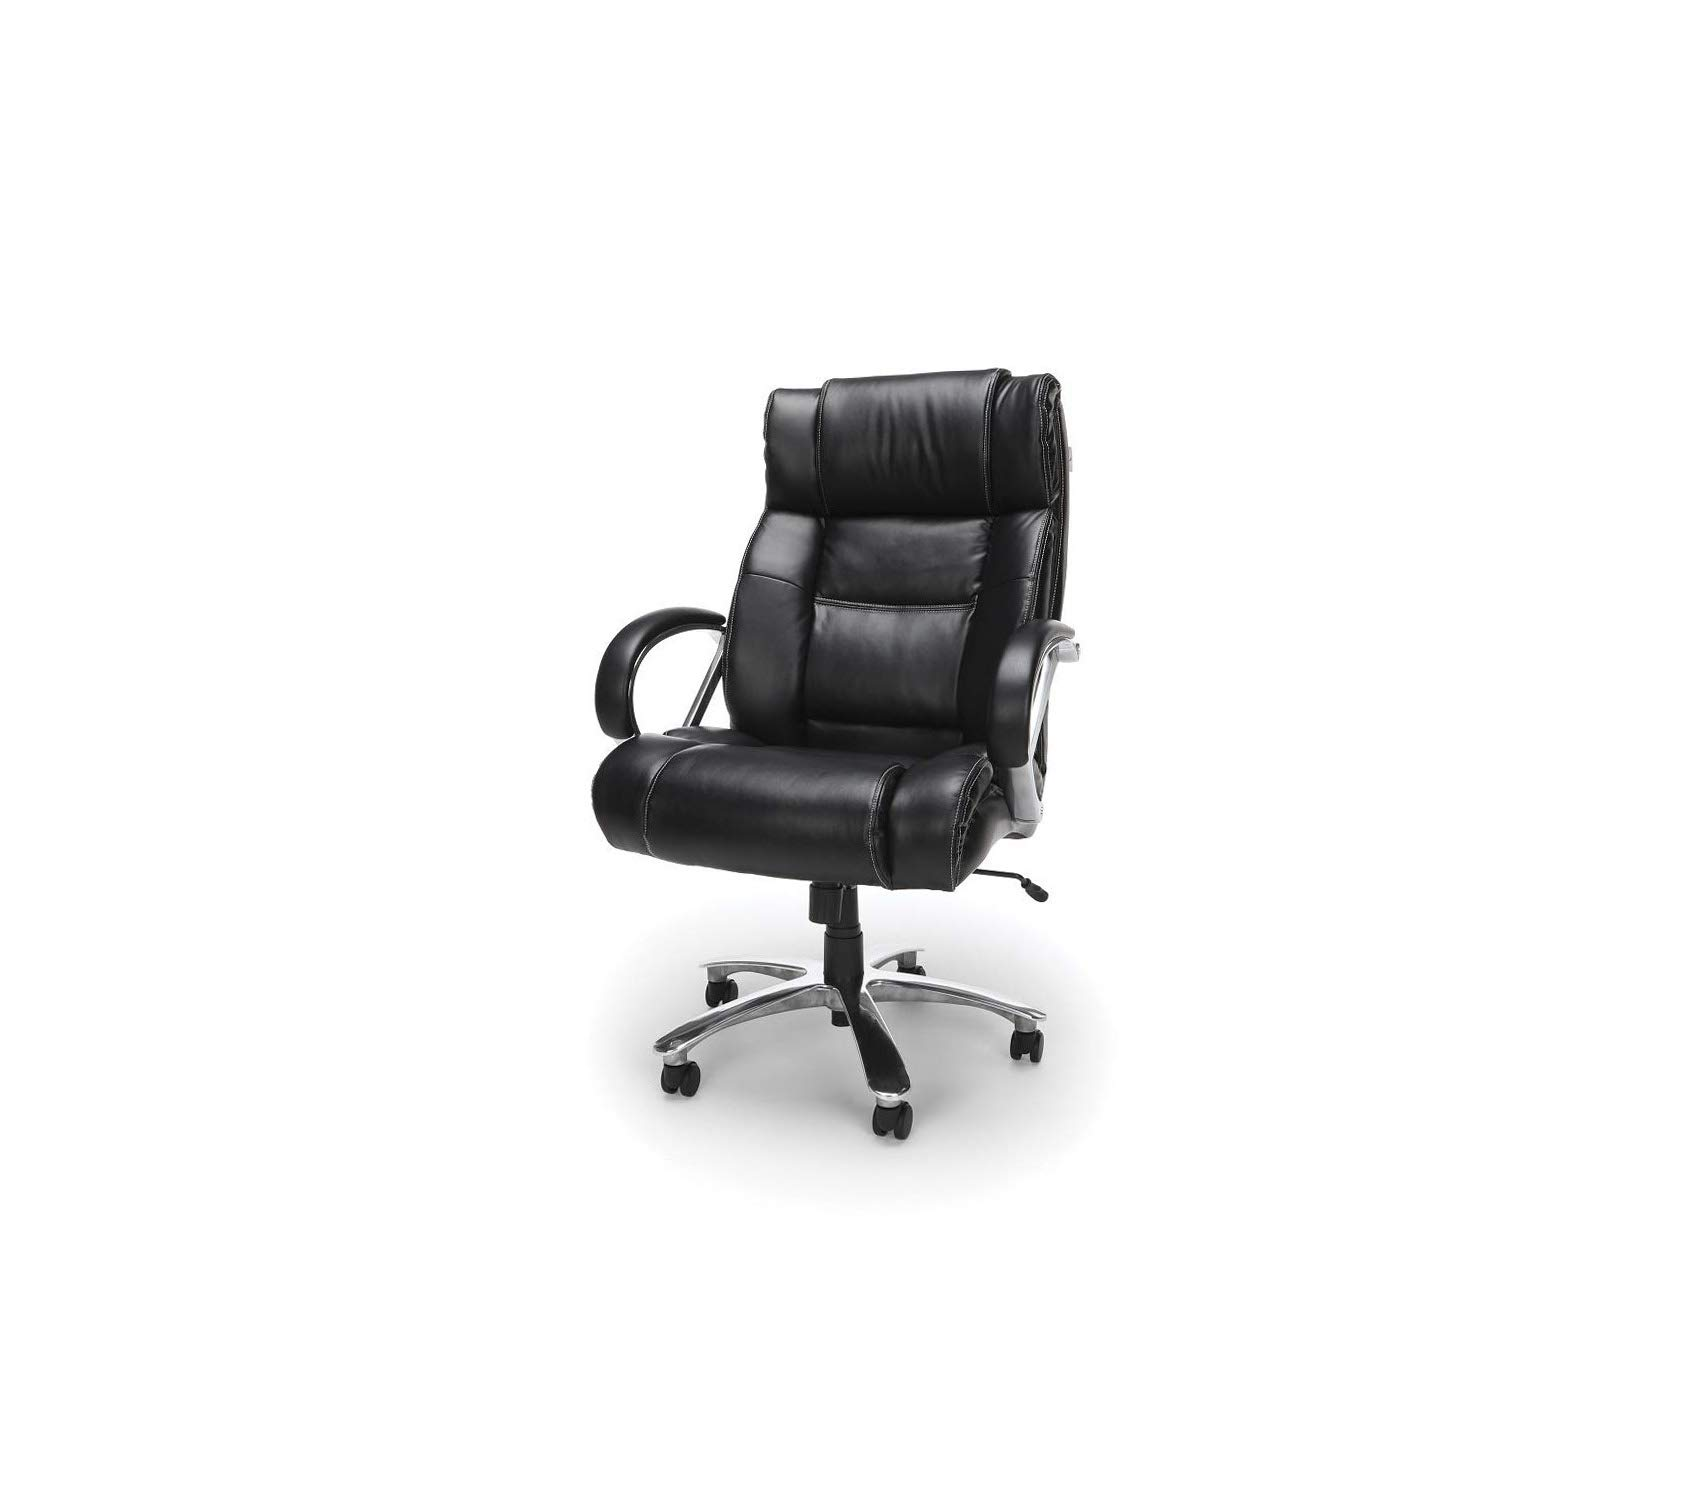 Оfm Avenger Series Big and Tall Leather Executive Chair - Black Computer Chair with Arms, Black/Chrome